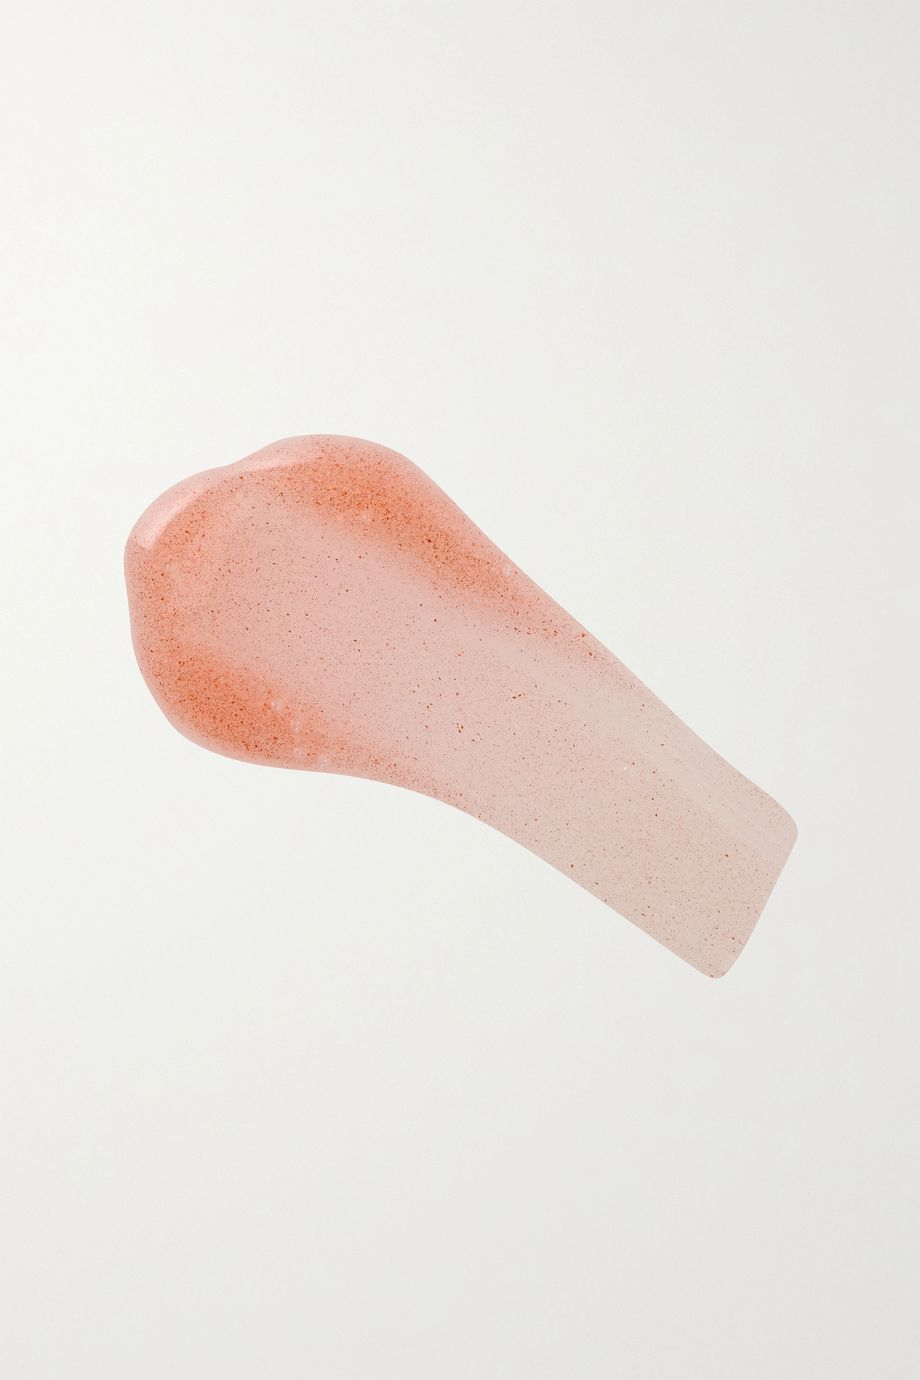 Lipstick Queen Lip Restore Scrub, 3.2ml